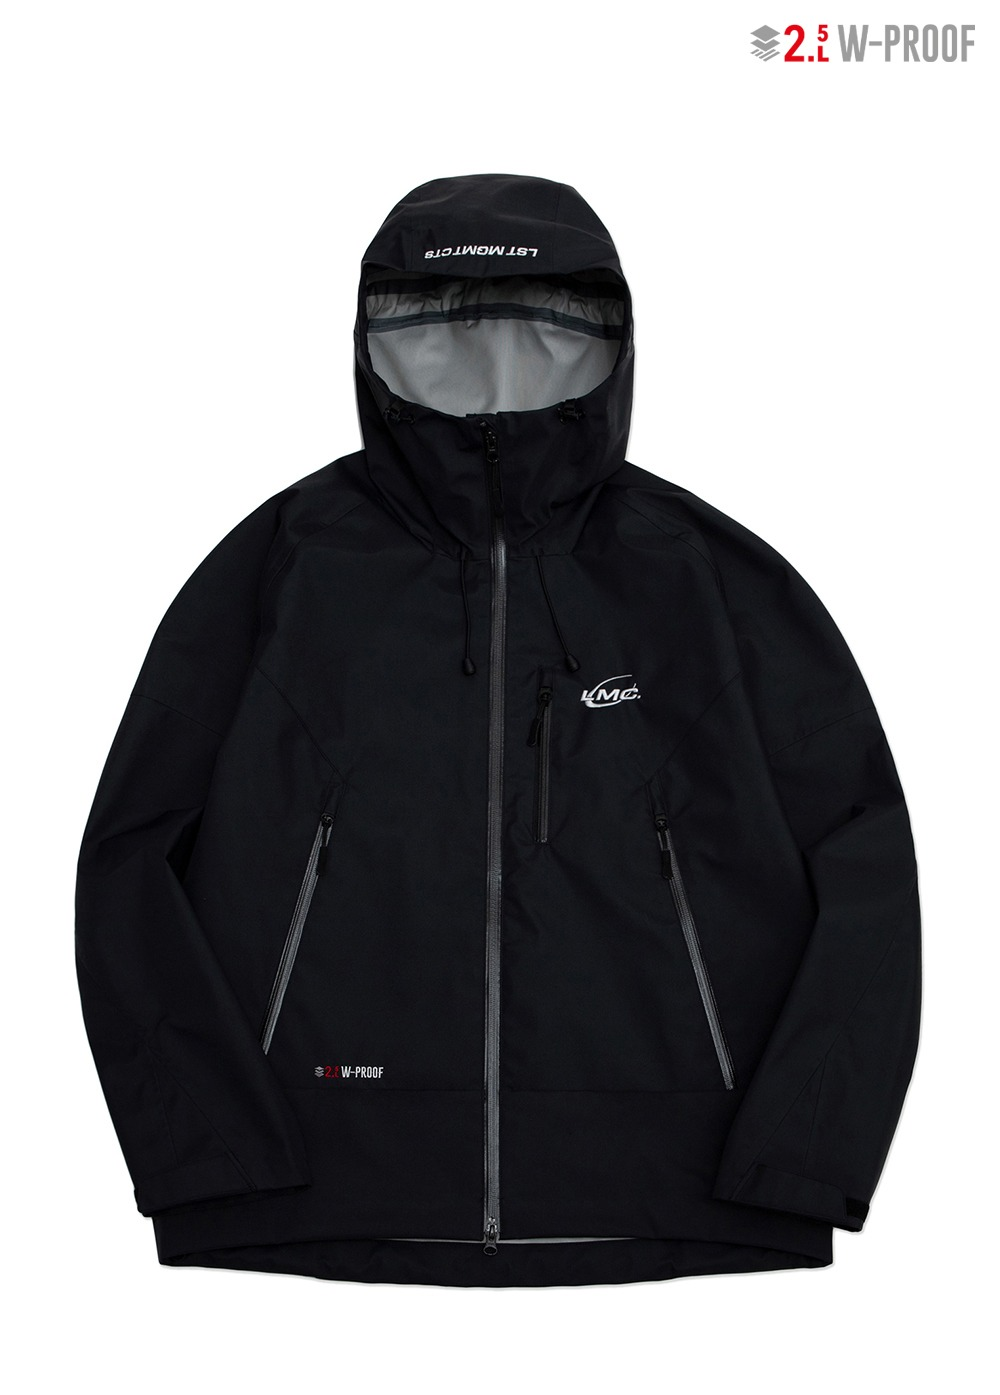 LMC WATERPROOF SHIELD JACKET black